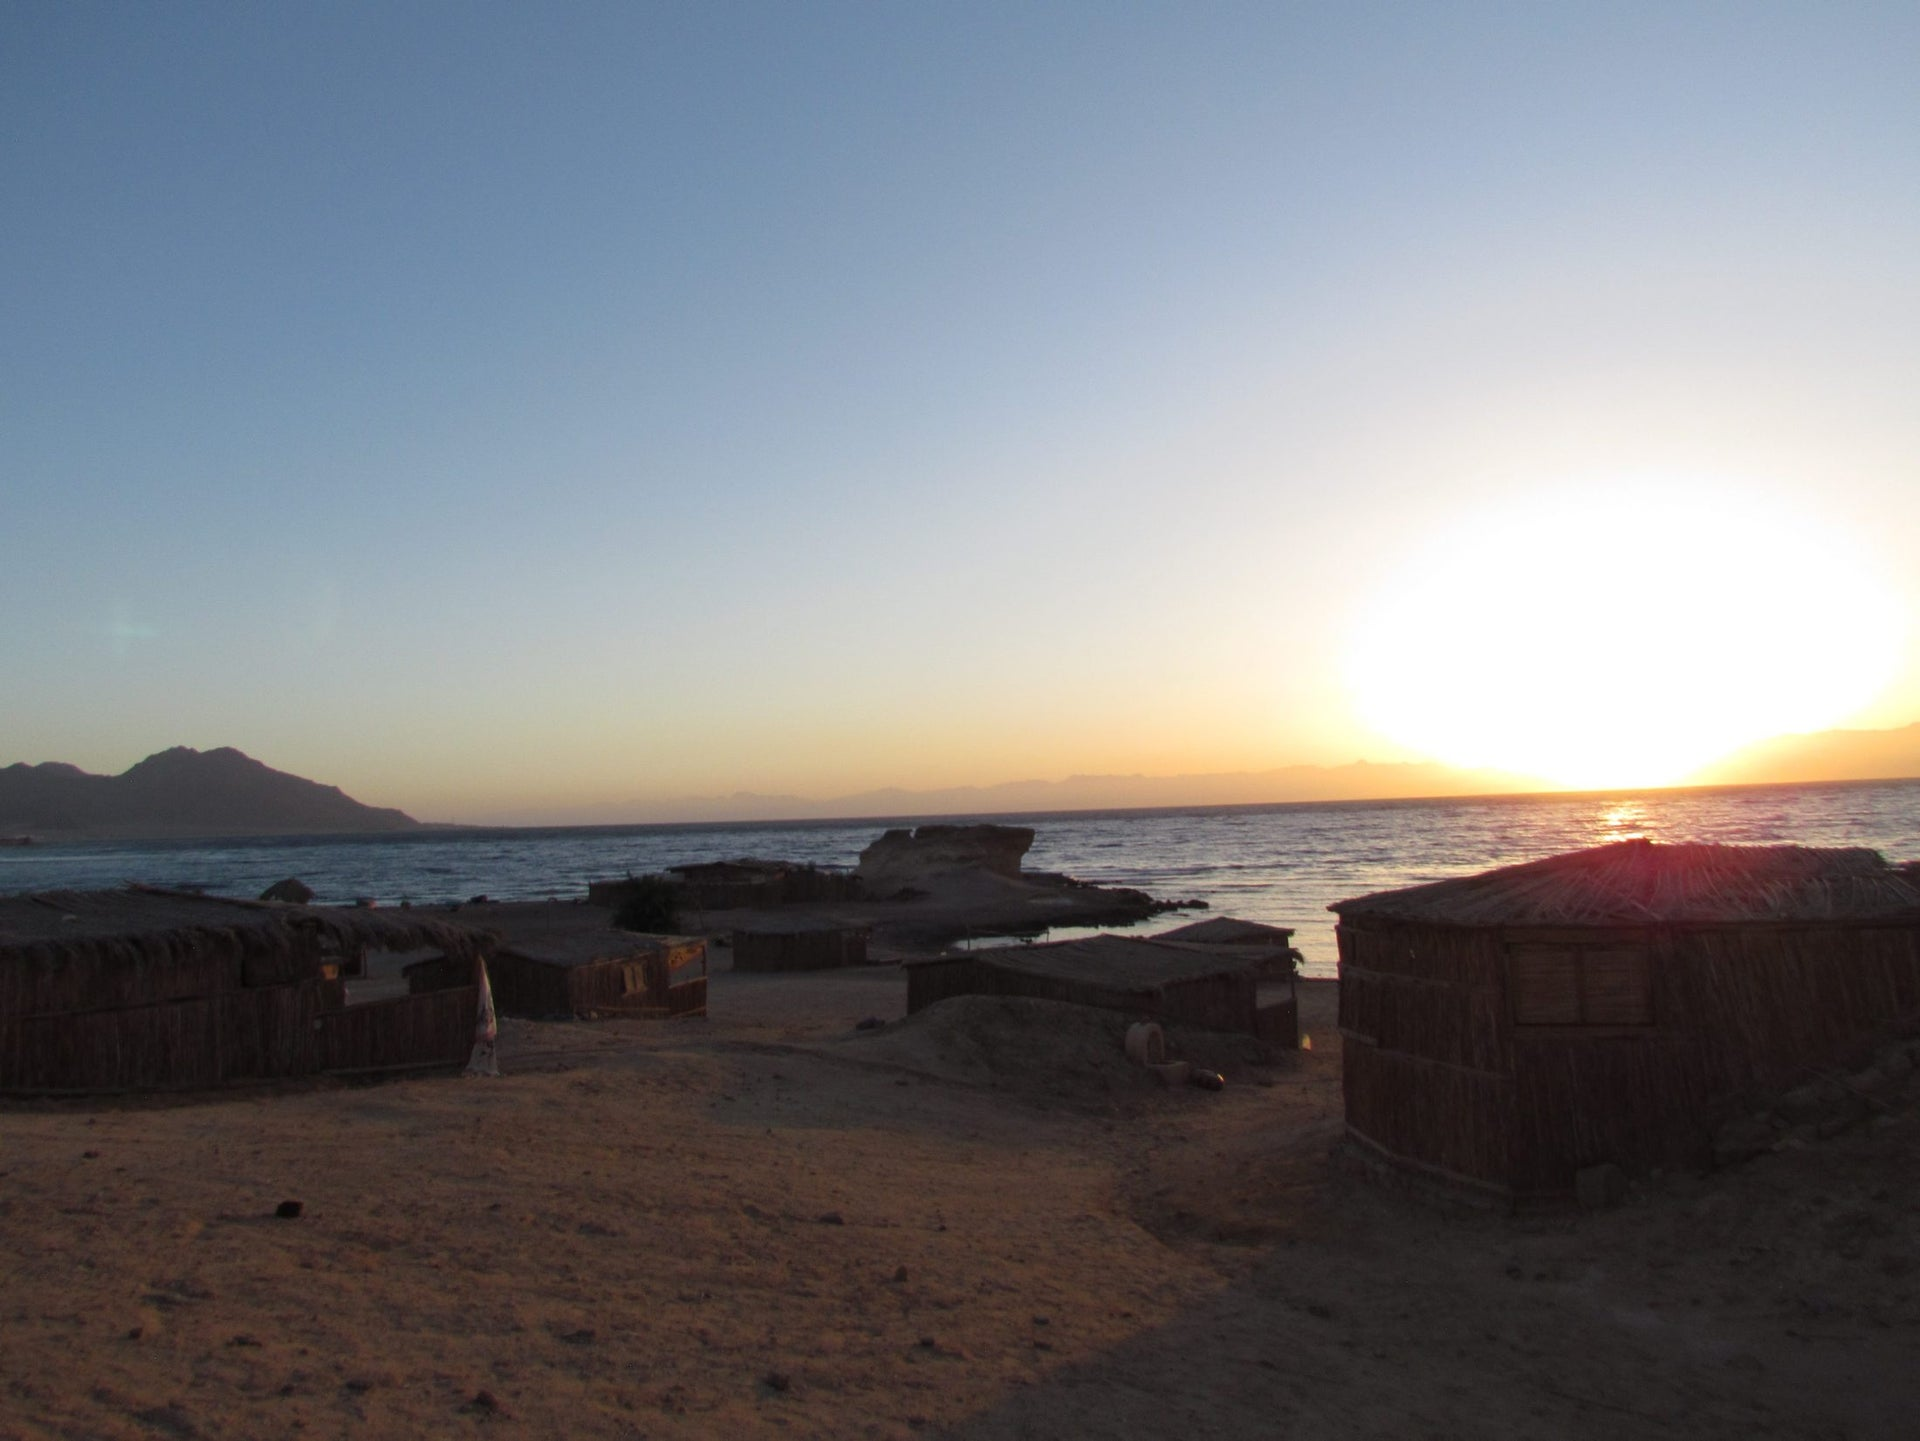 Sunset over the Red Sea in Sinai.